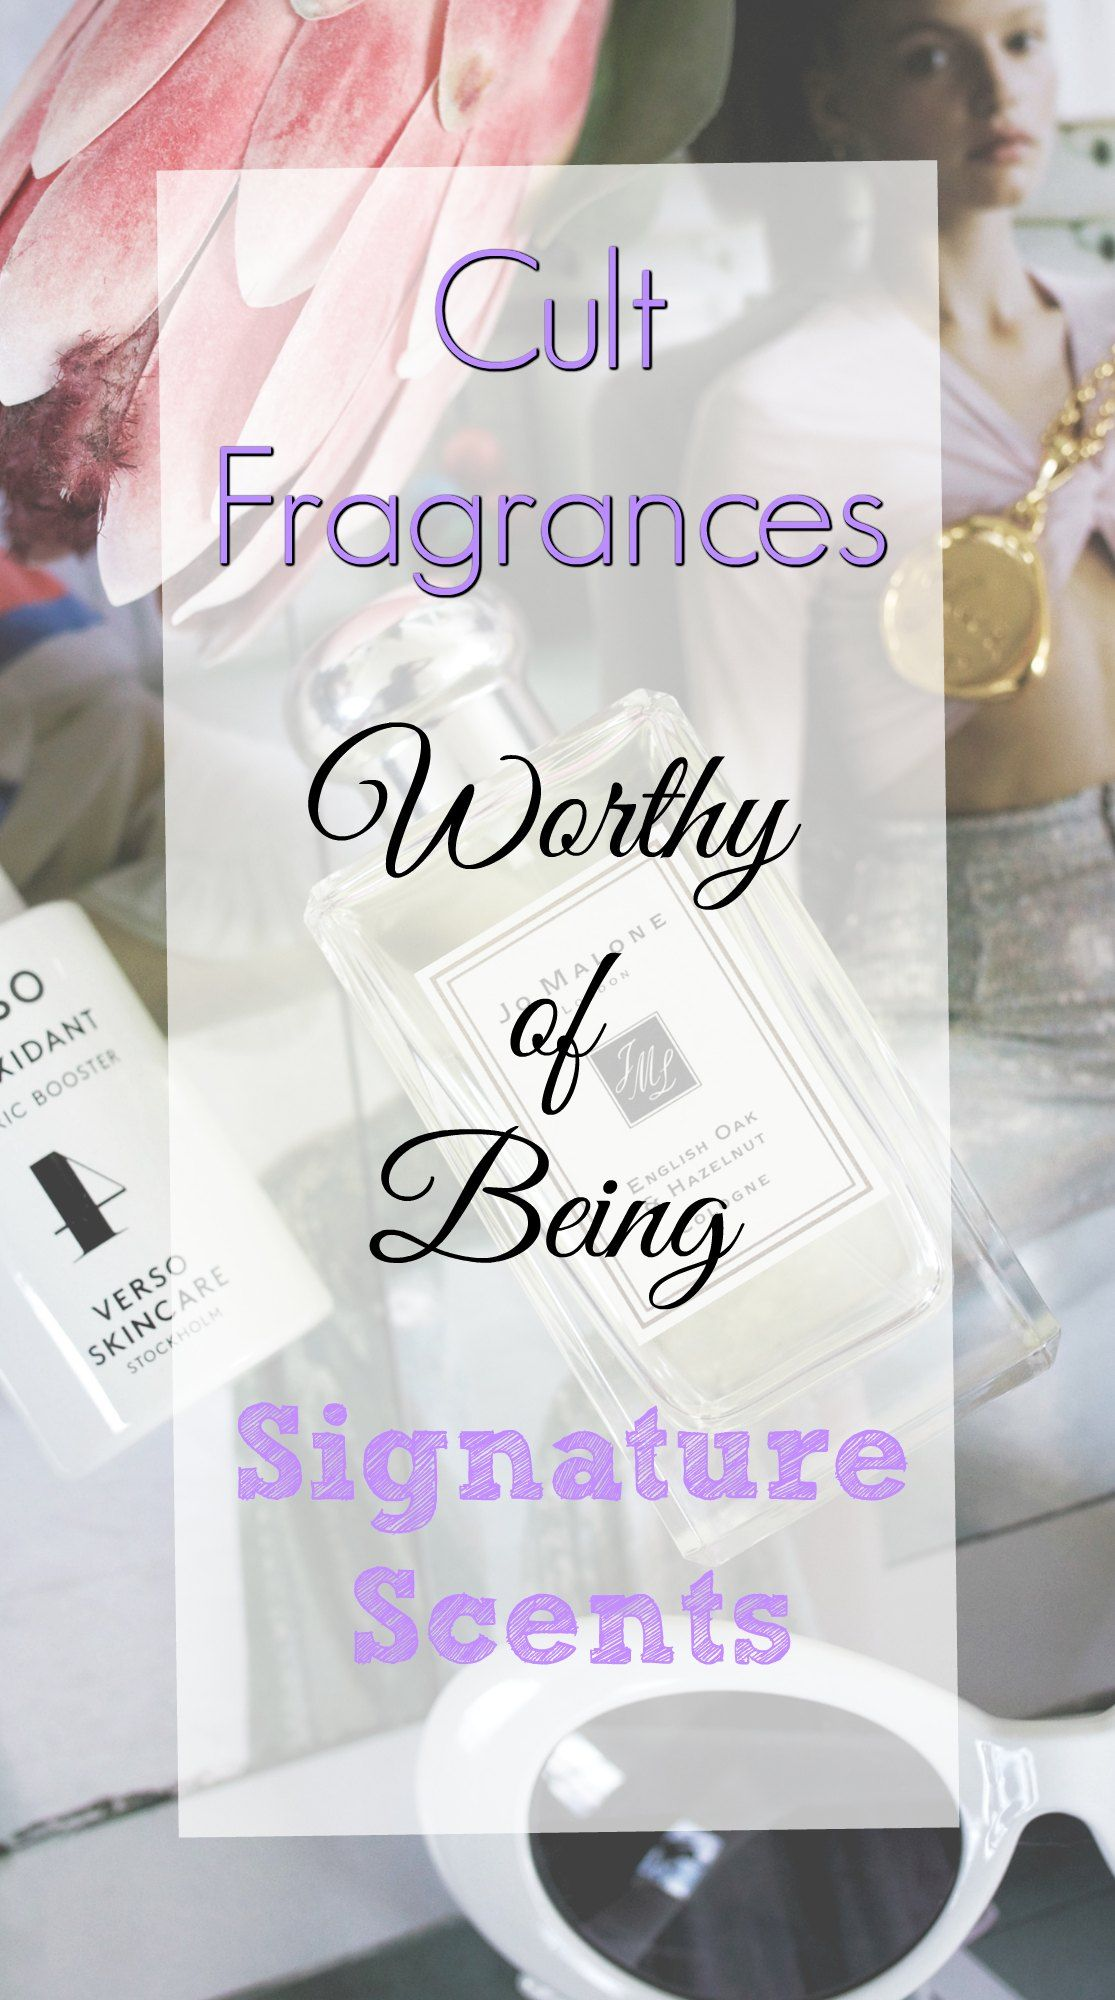 Cult Fragrances Worthy of Being Signature Scents